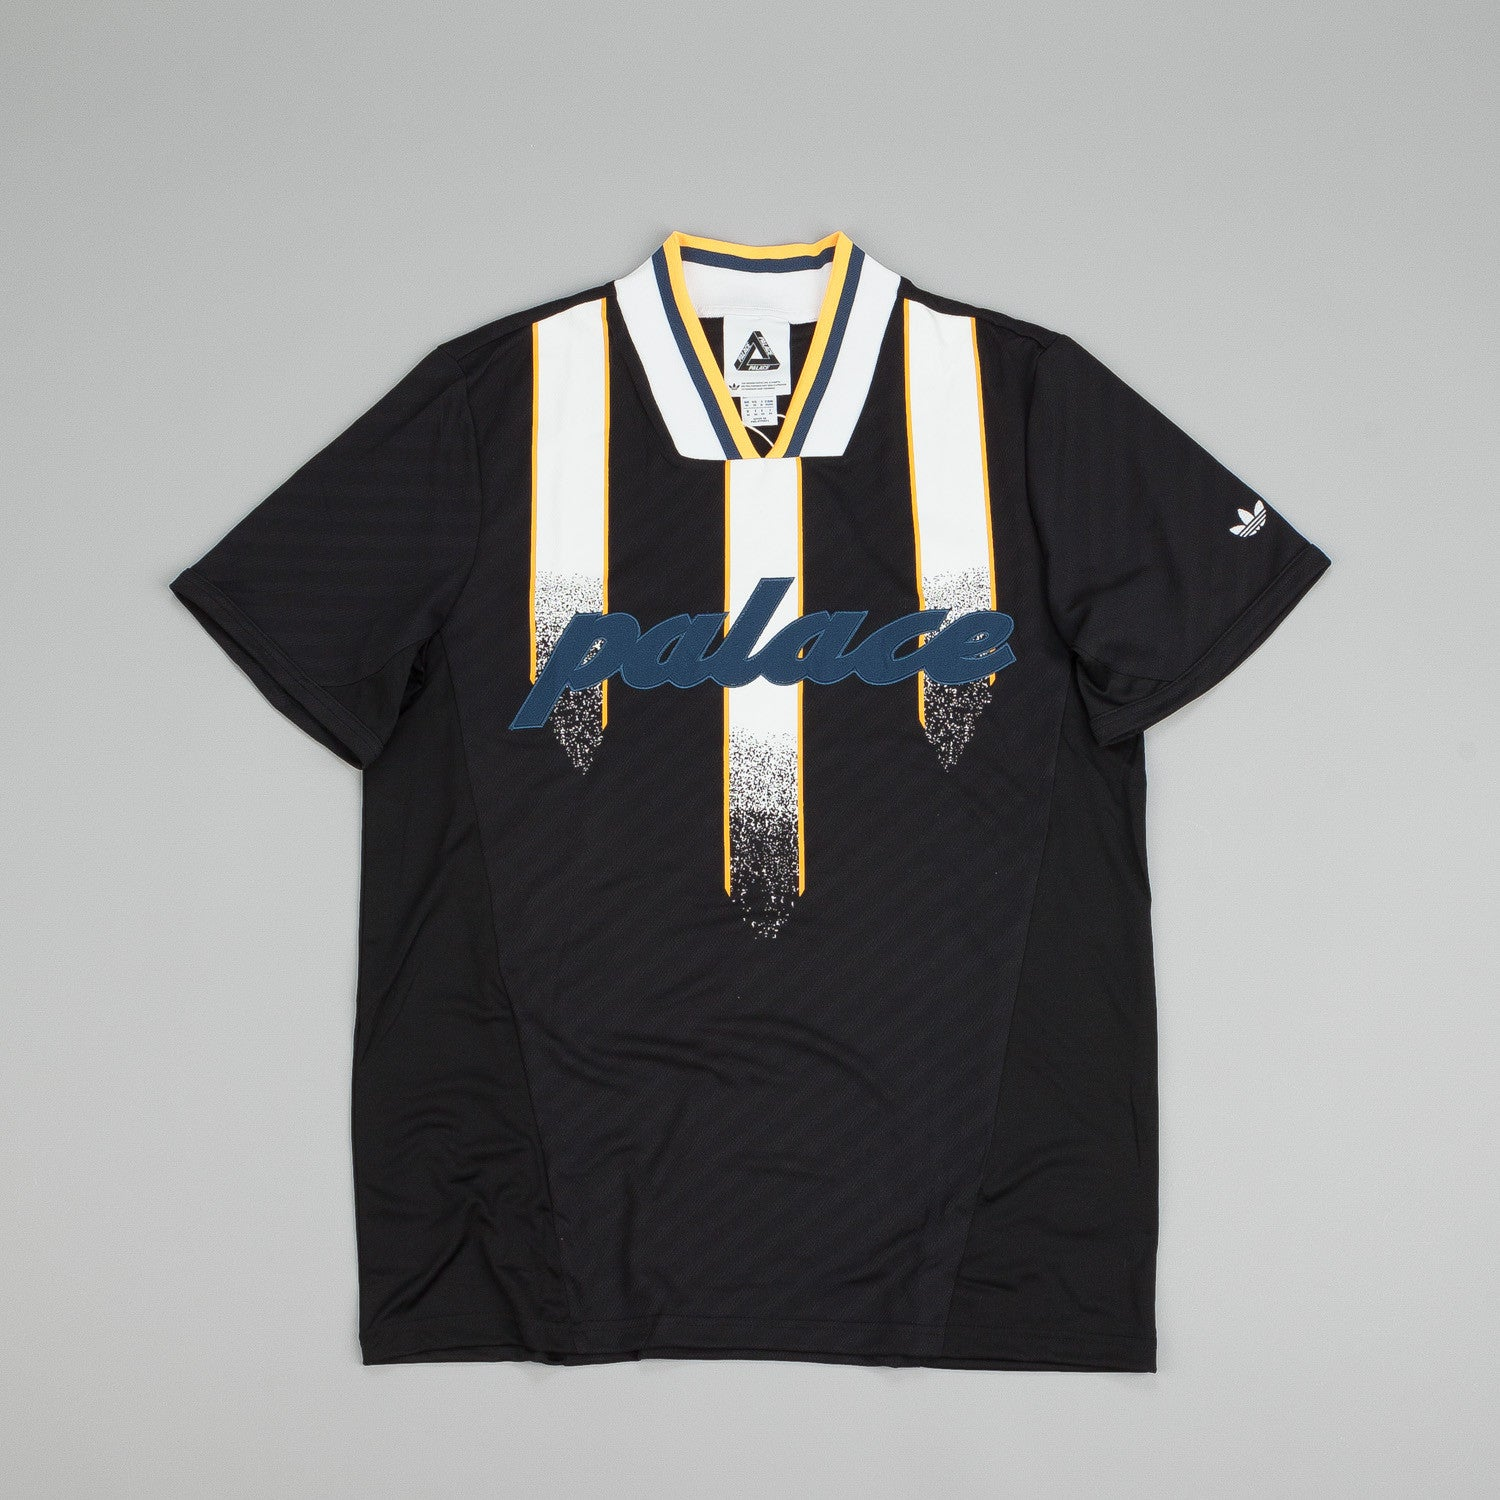 Adidas X Palace Team Away Shirt Black